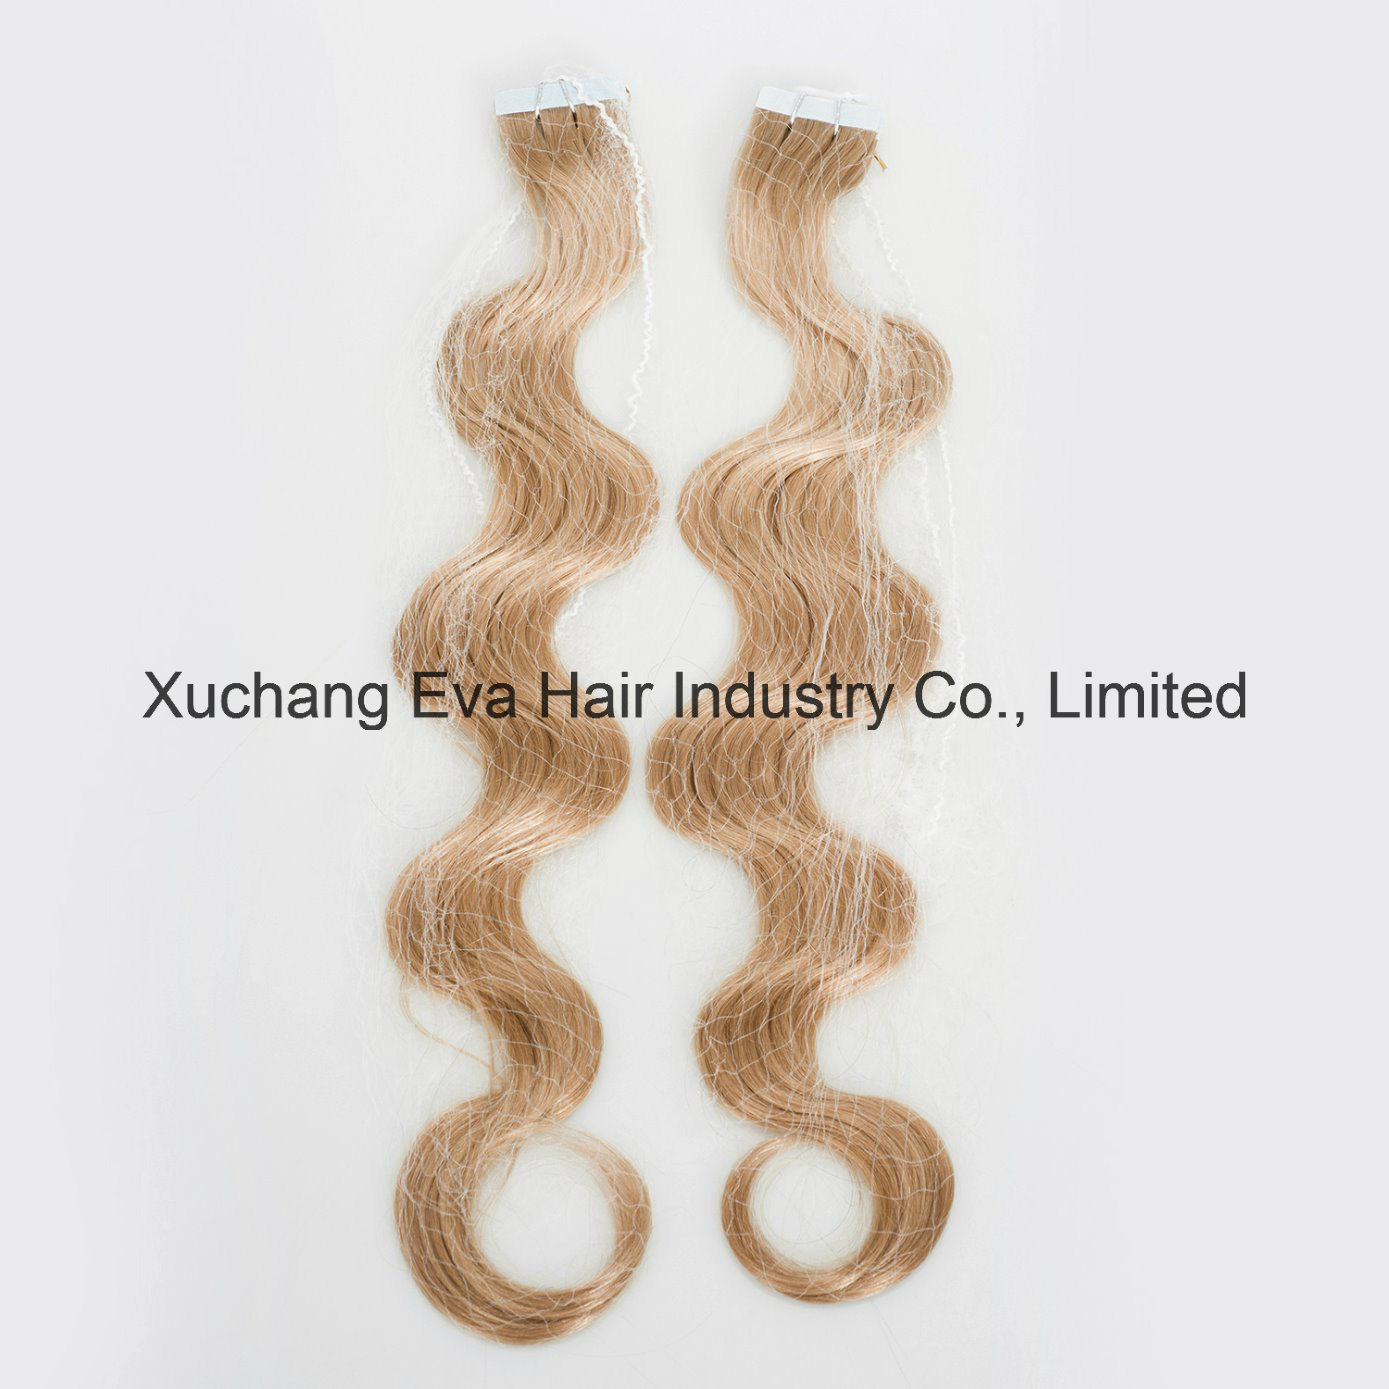 China Wholesale Full Cucitles Russian Remy Body Wave Tape Hair